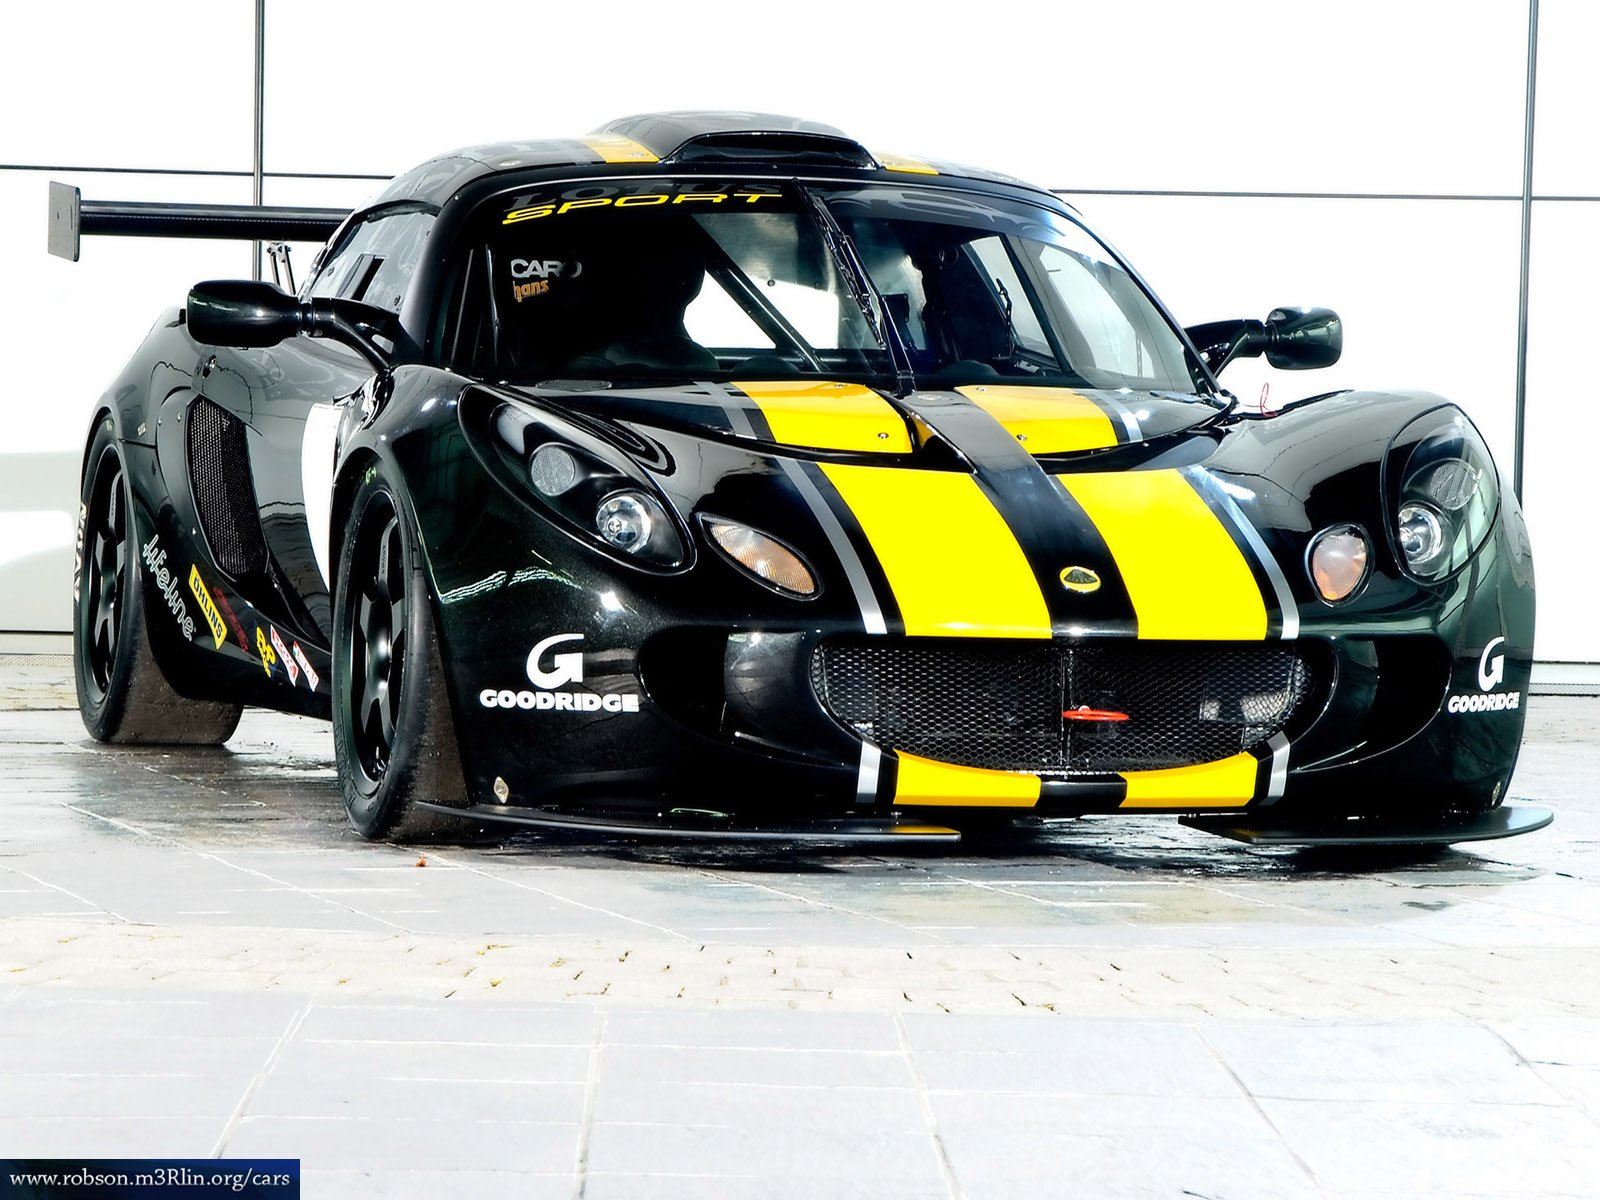 Latest Lotus Car Images Cars Wallpapers And Pictures Car Images Free Download